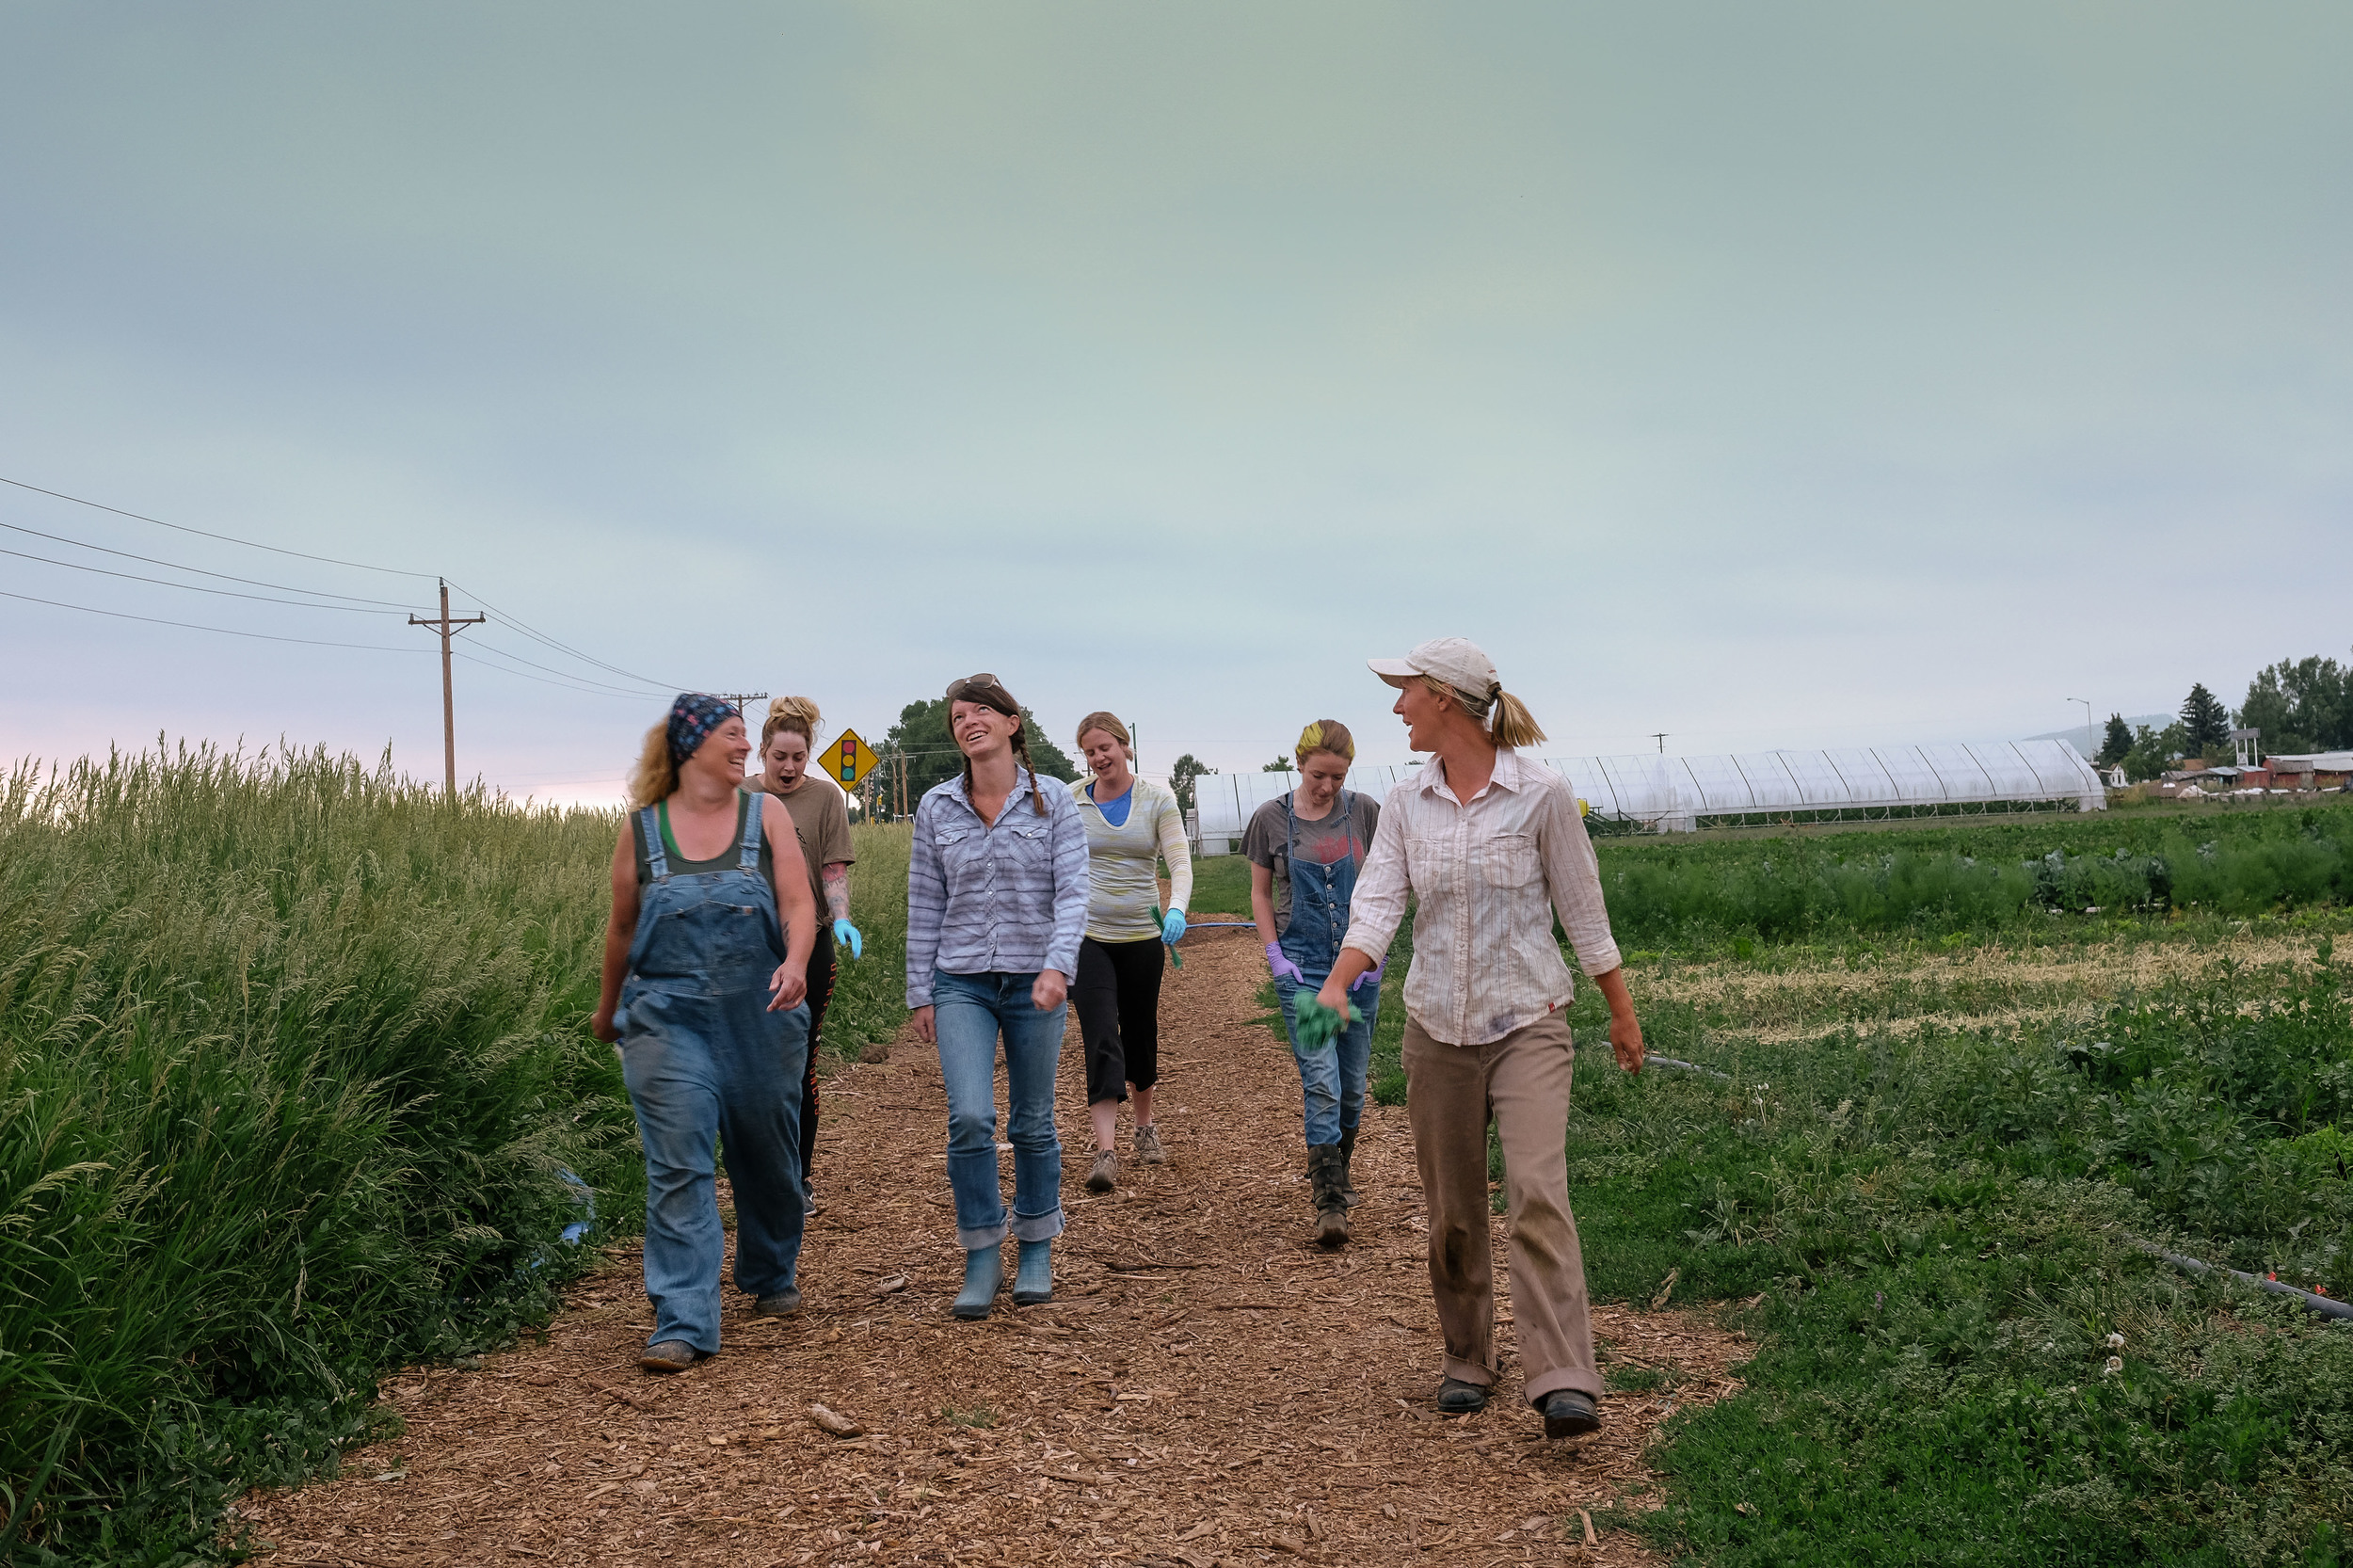 Katie Slota and the morning harvest crew, mostly CSA members, hit the fields just after 6:00 a.m.